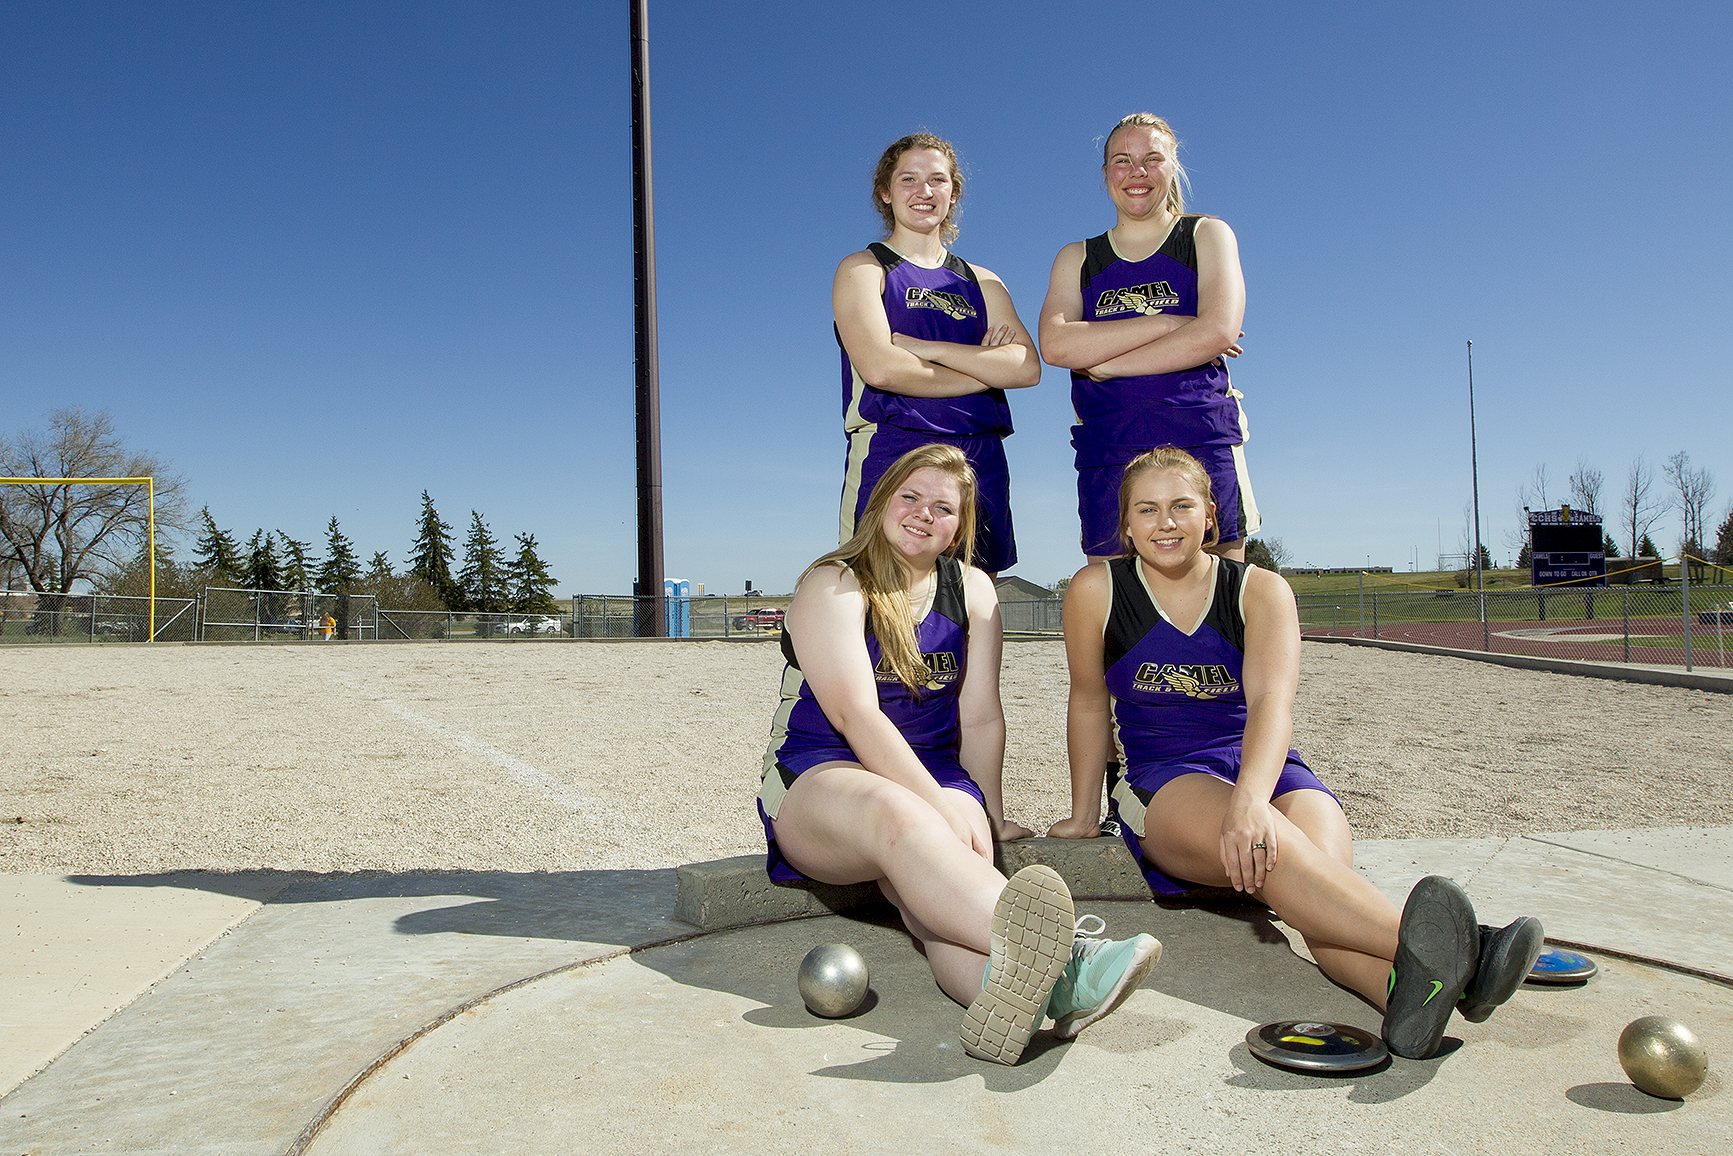 Gillette throwers Makayla Tucker, clockwise from back left, Jordan Fink, Taylor Smith and Shantell Gladson, photographed Thursday at the CCHS shot put pit, have all qualified for the state track meet in either the shot put or discuss, less than halfway through the season. Gladson won the indoor shot put title with a throw of 35 feet and 10.5 inches.